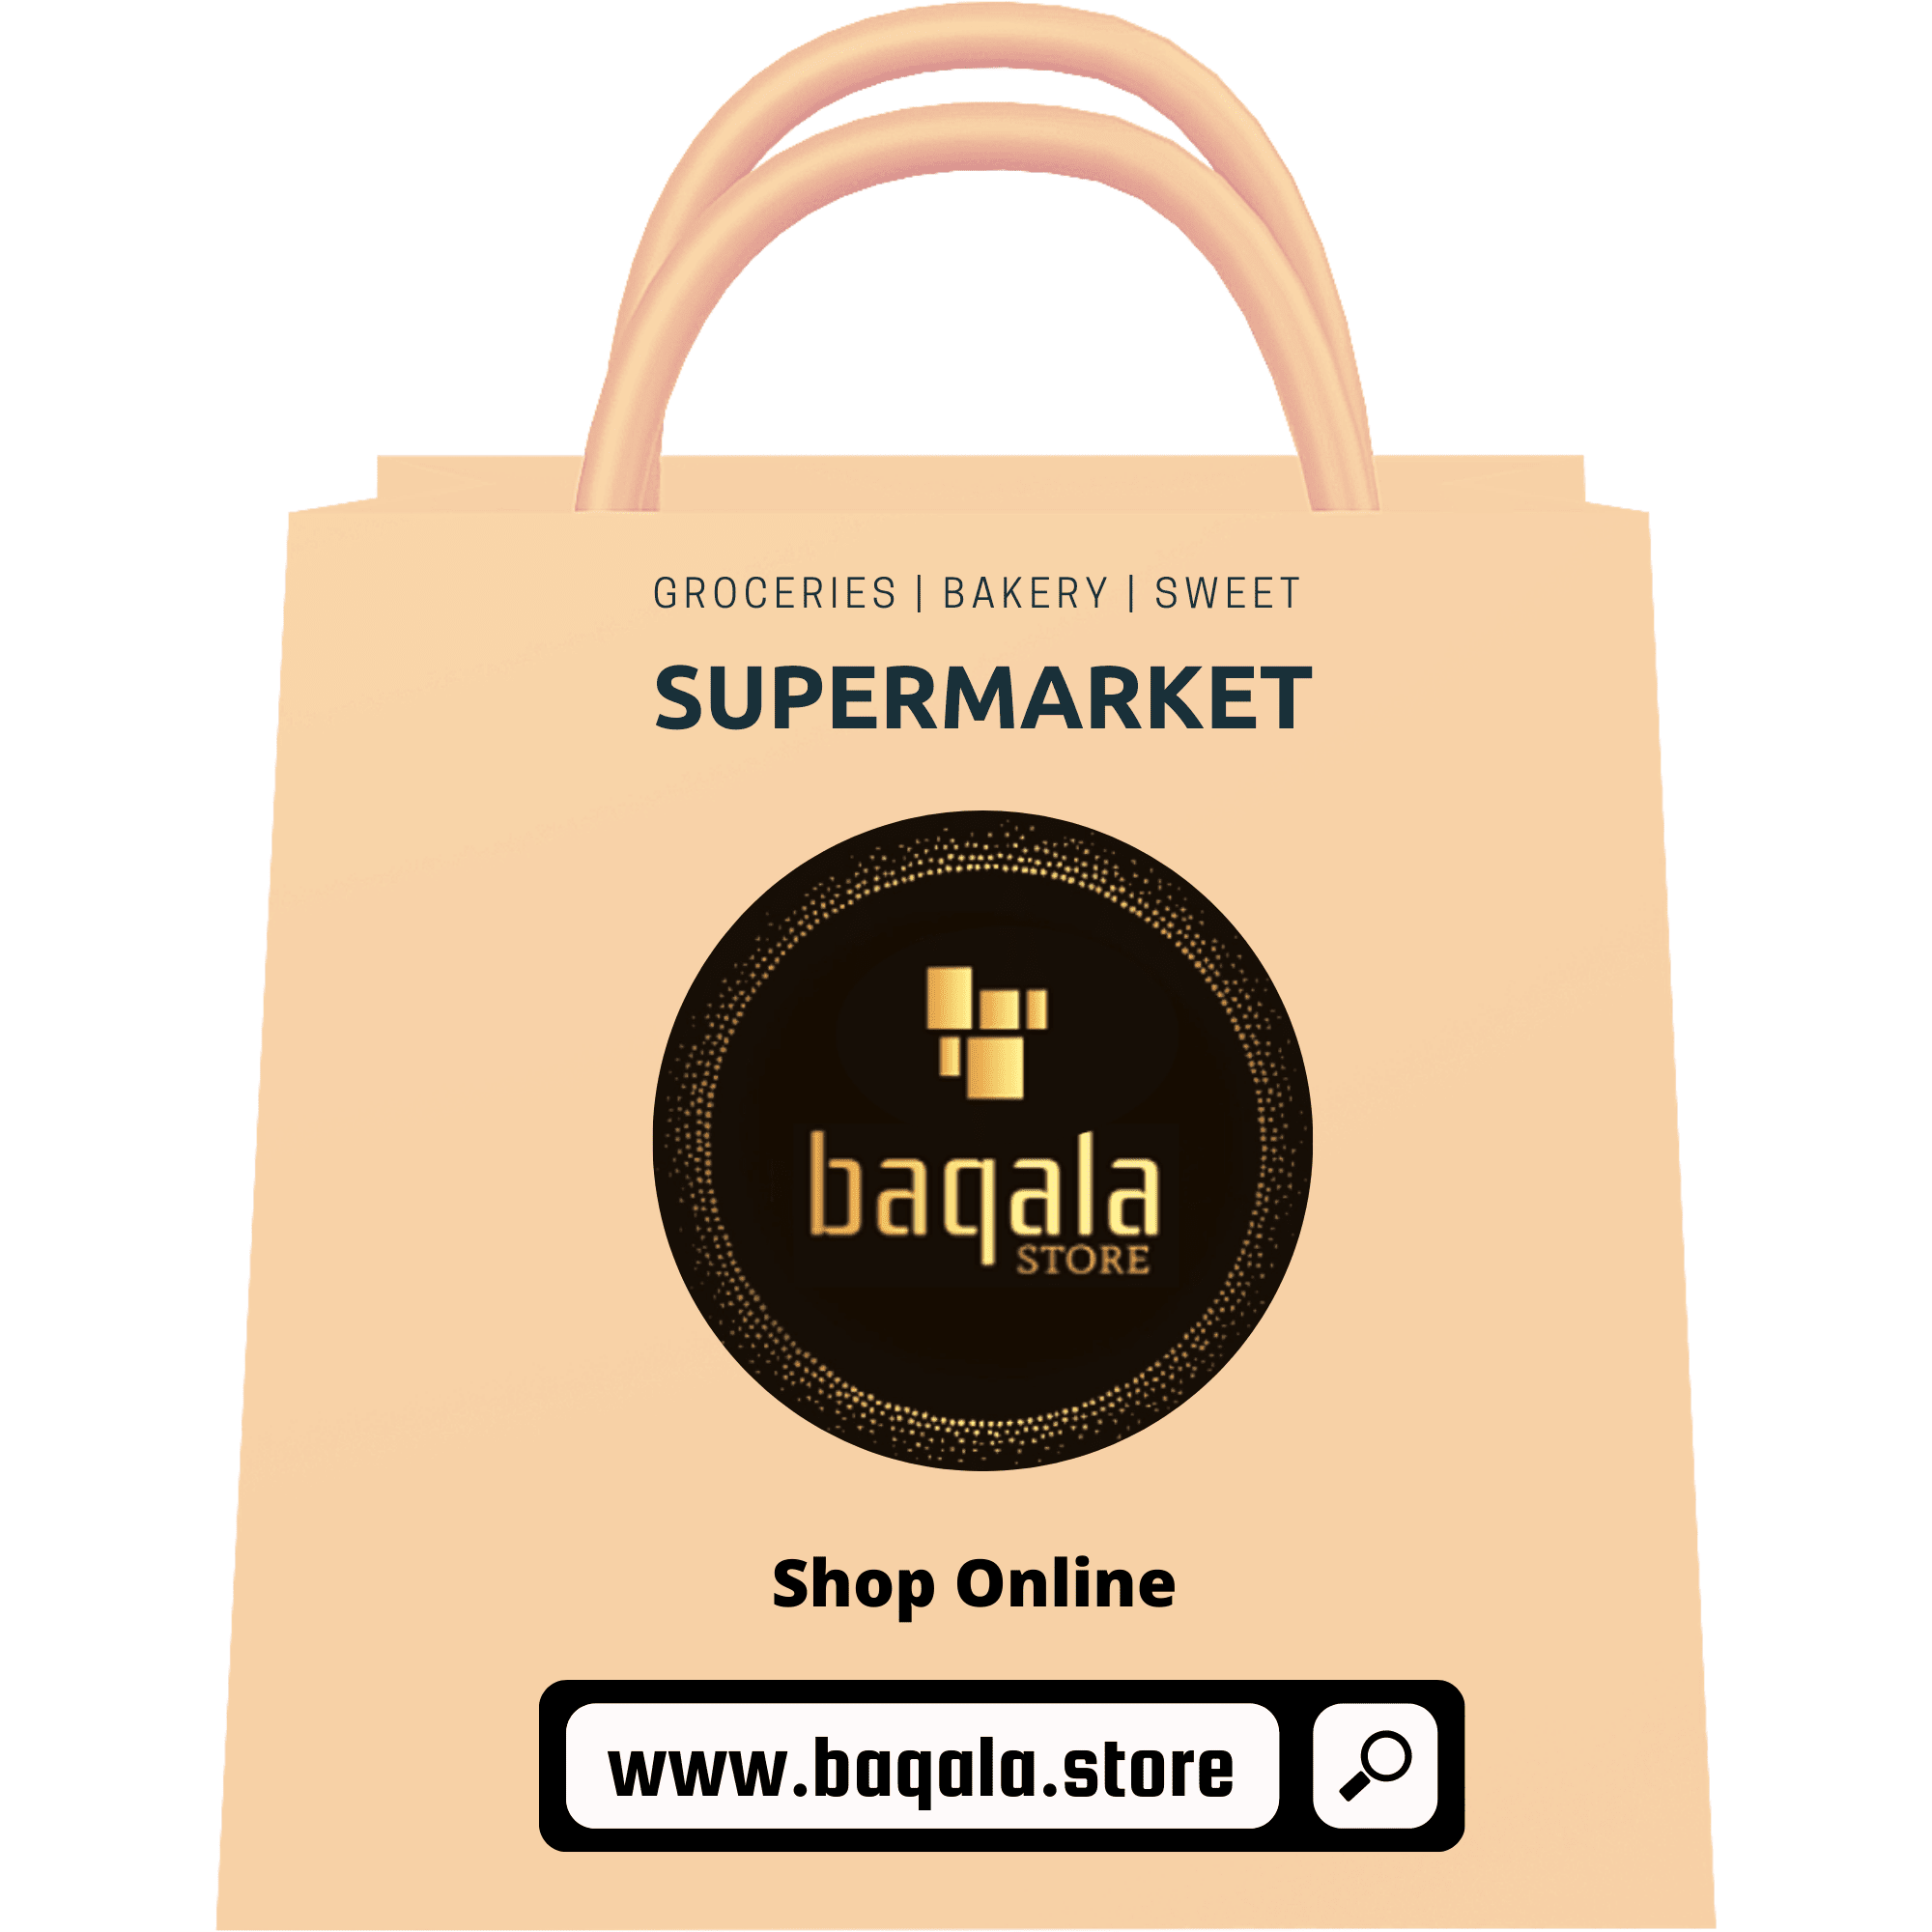 Shop-Online-at-baqala-store